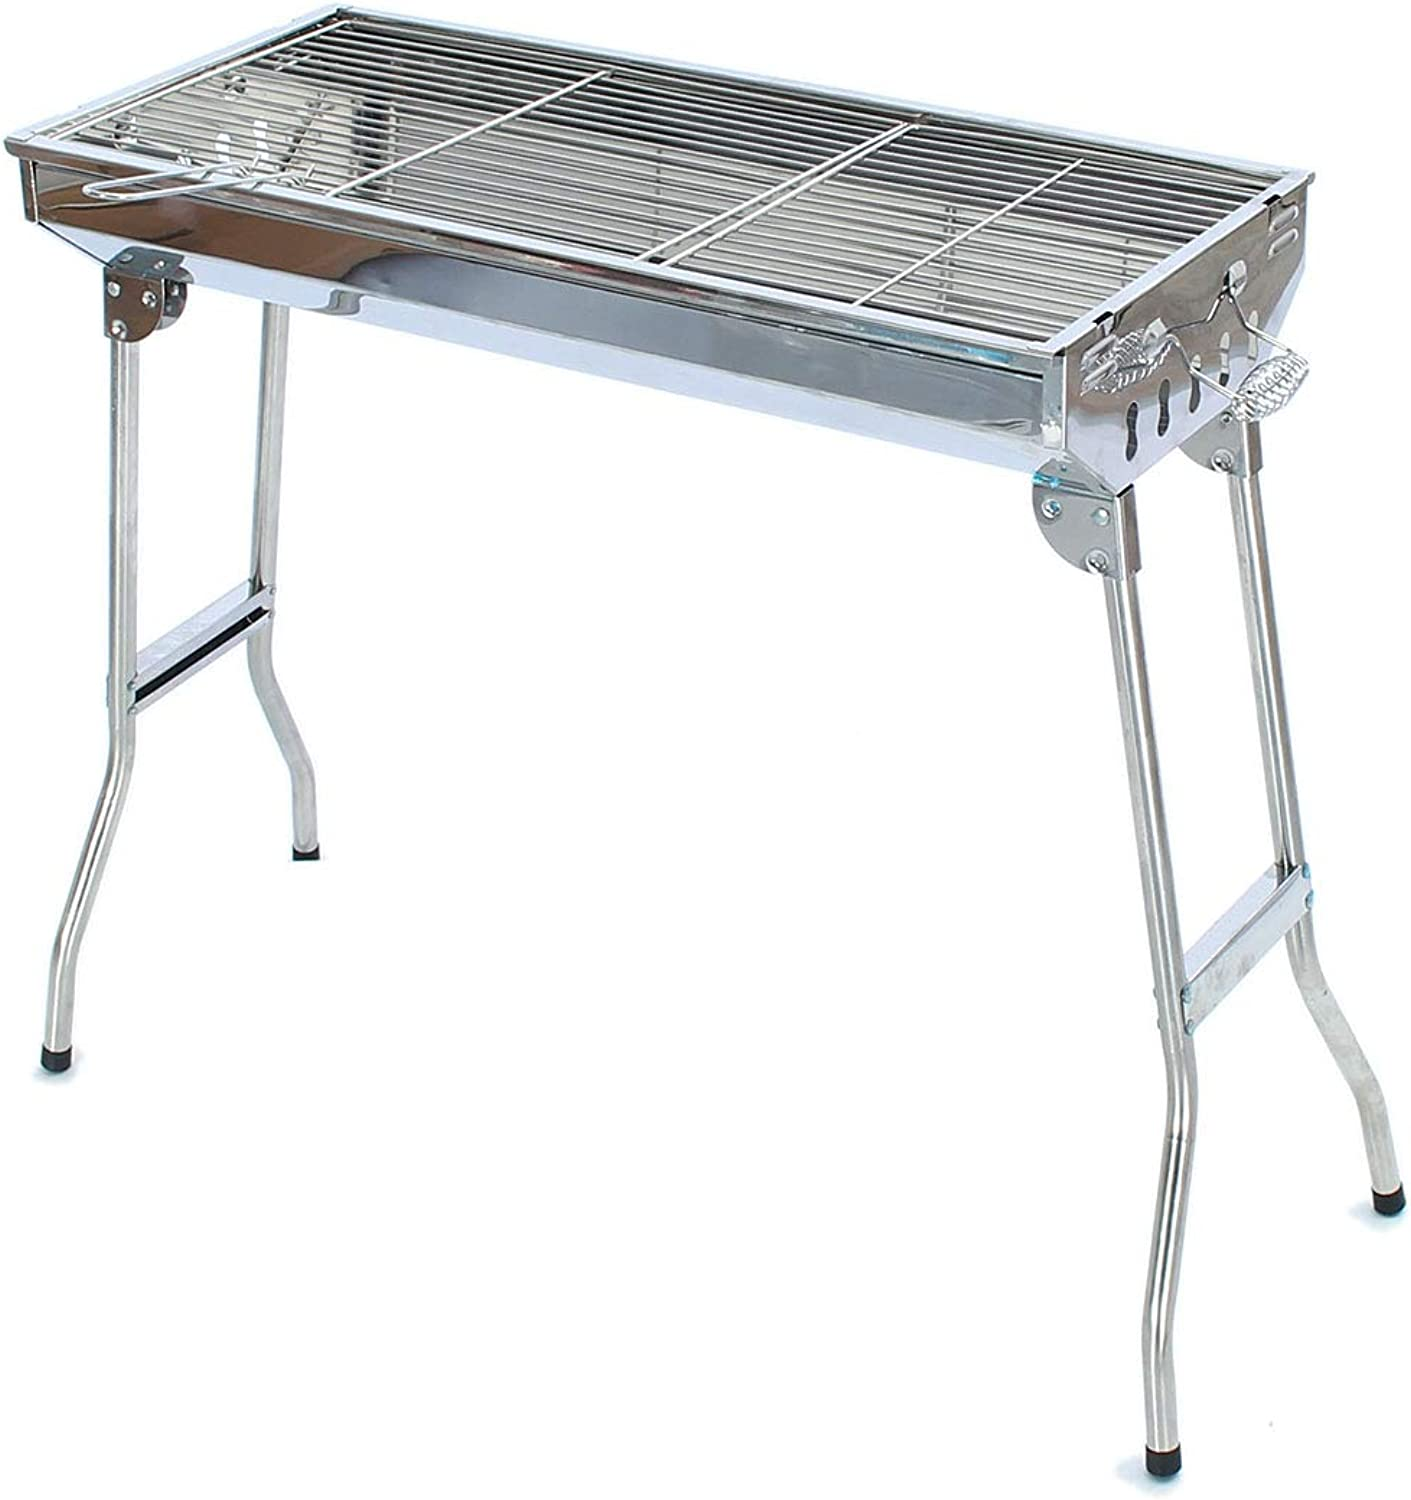 ILUVBBQ Faltbare BBQ Grill Barbecue Holzkohleherd Herd Edelstahl Tragbare Party im freien Party Picknick Camping Grill